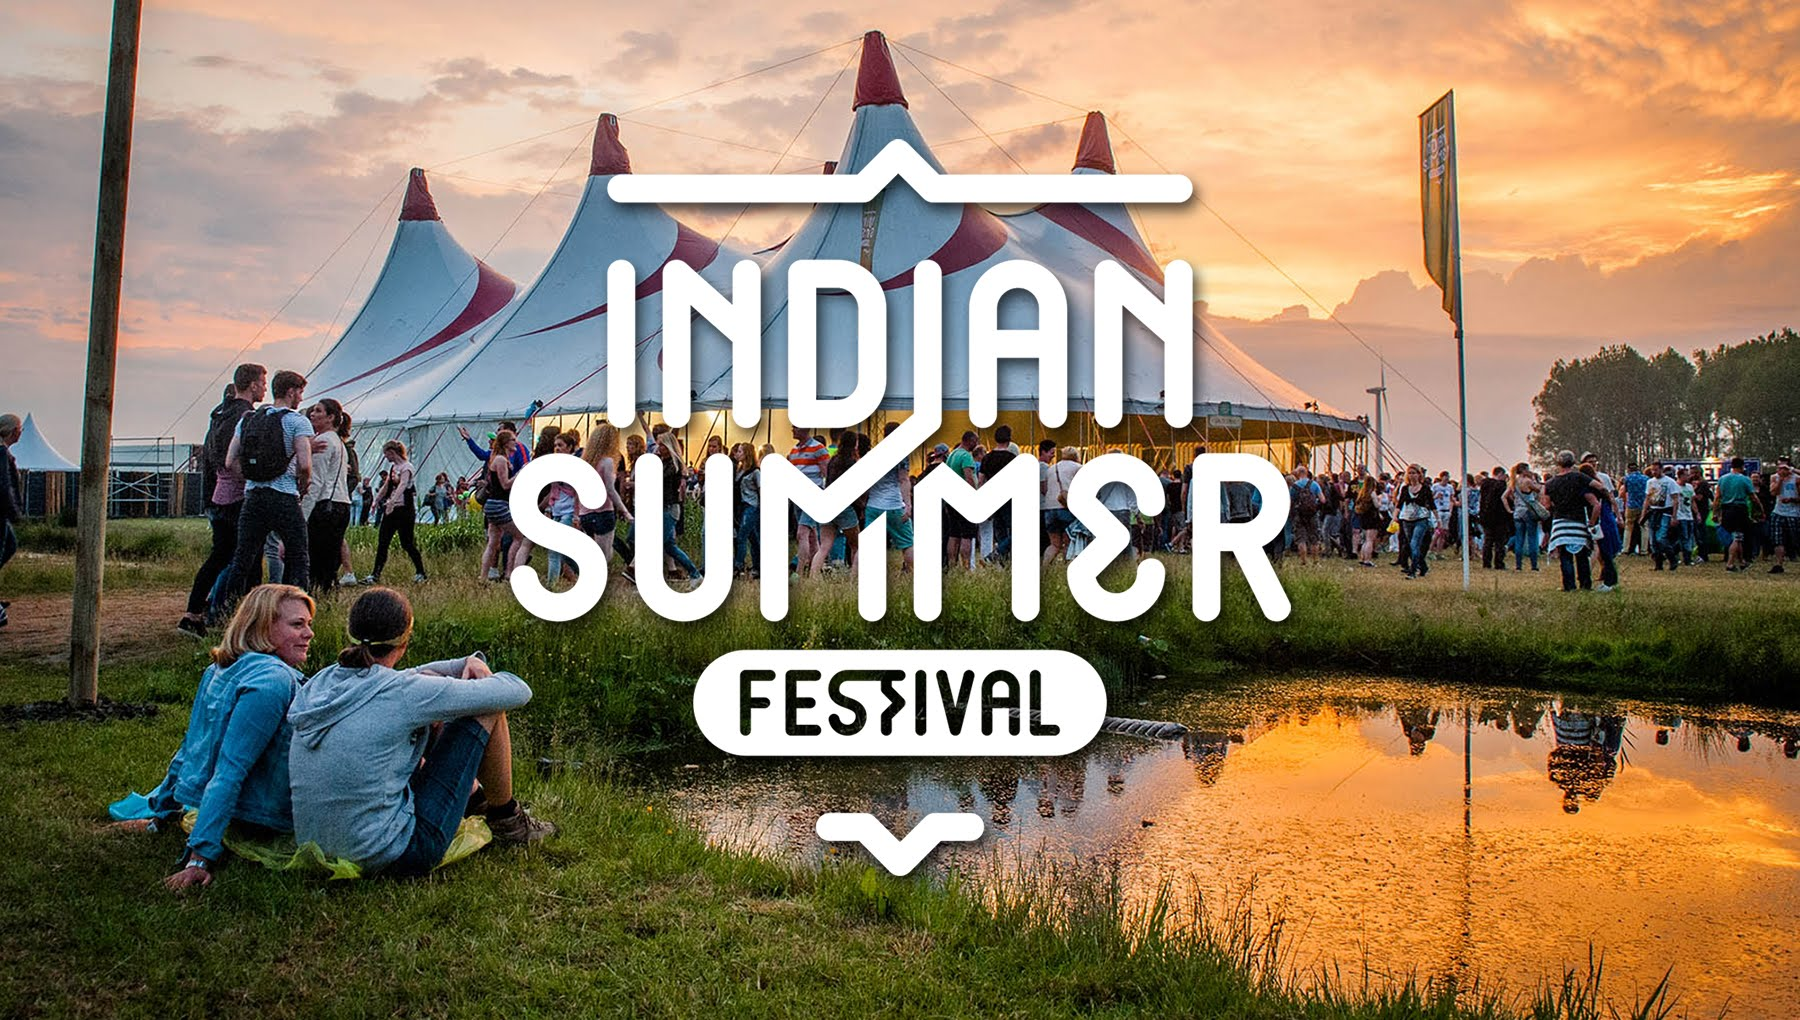 Indian Summer Festival mission is to create a culturally diverse and inclusive society.